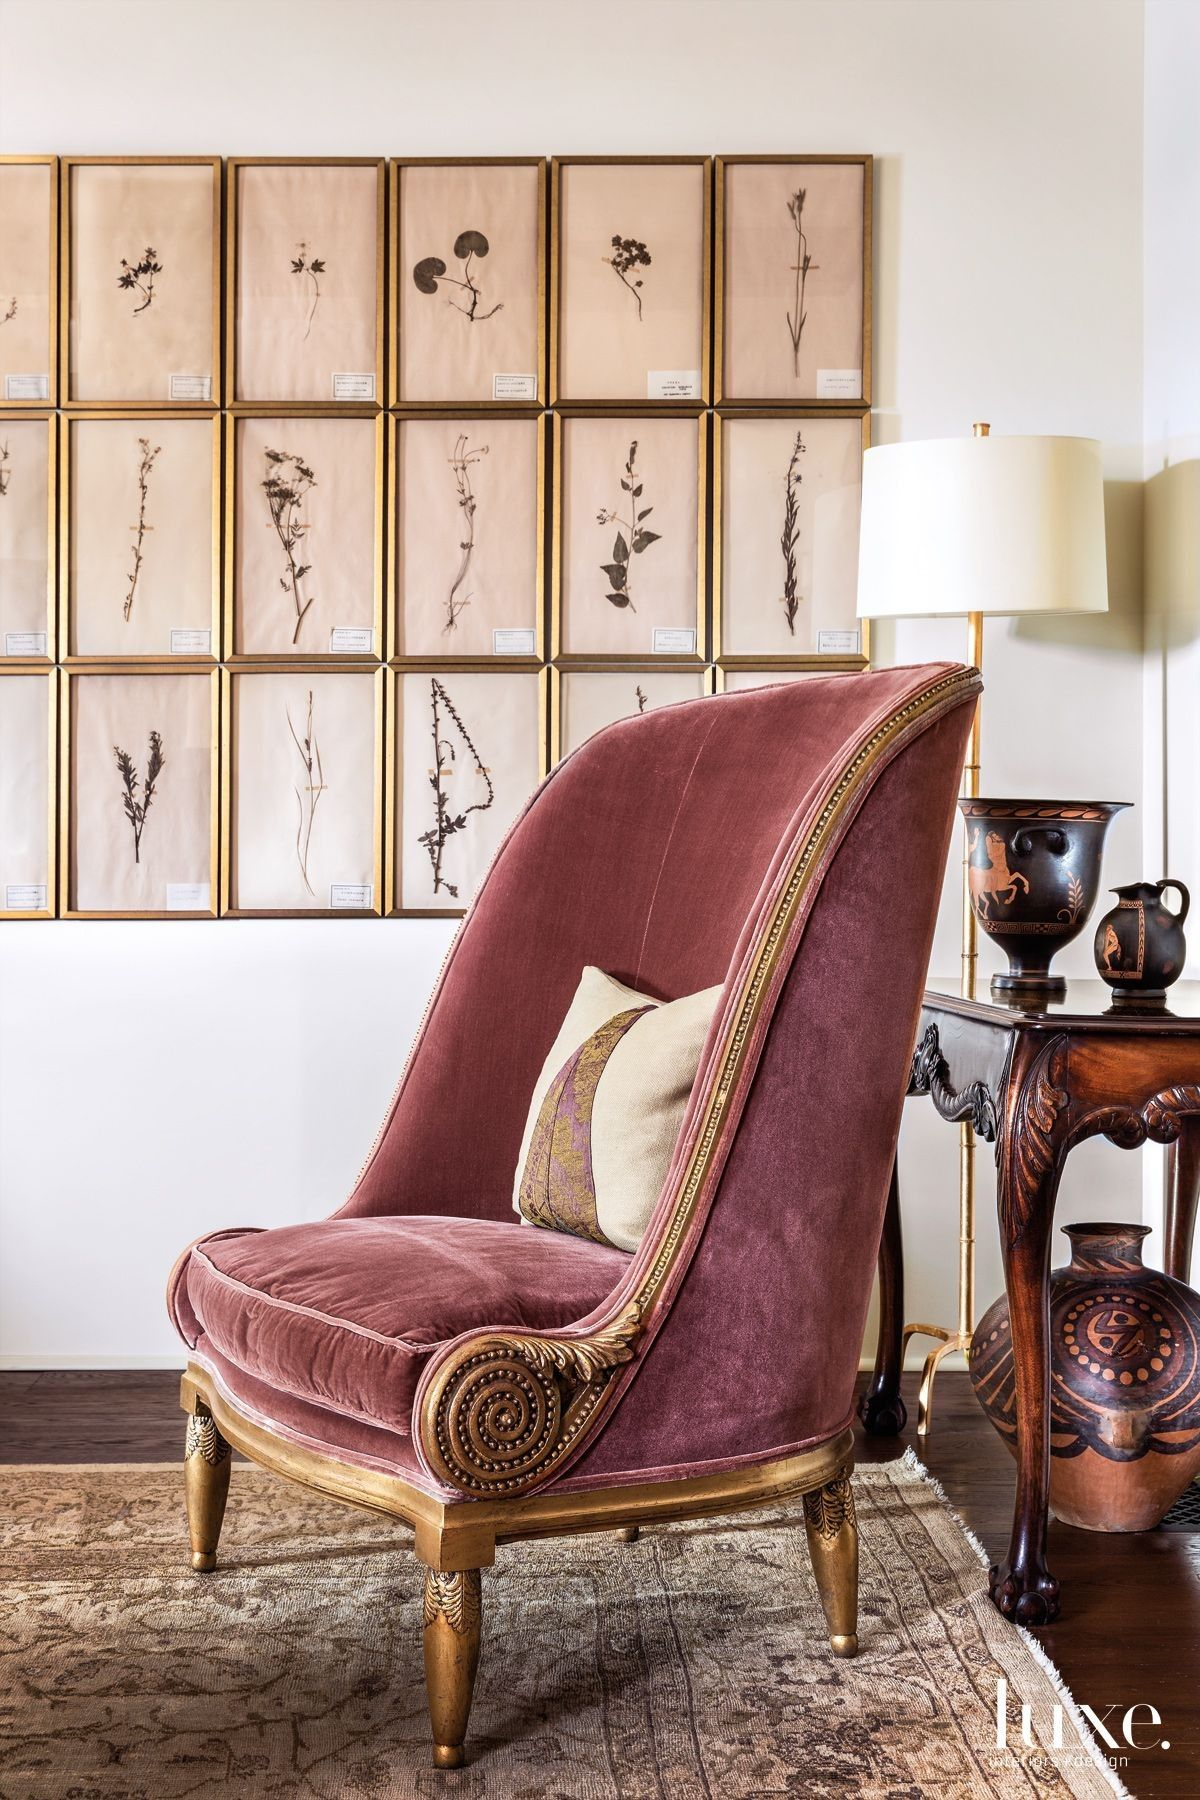 19th Century Drawing Room: Hajj Designed The Art Deco-style Gilt Chair That Sits Atop